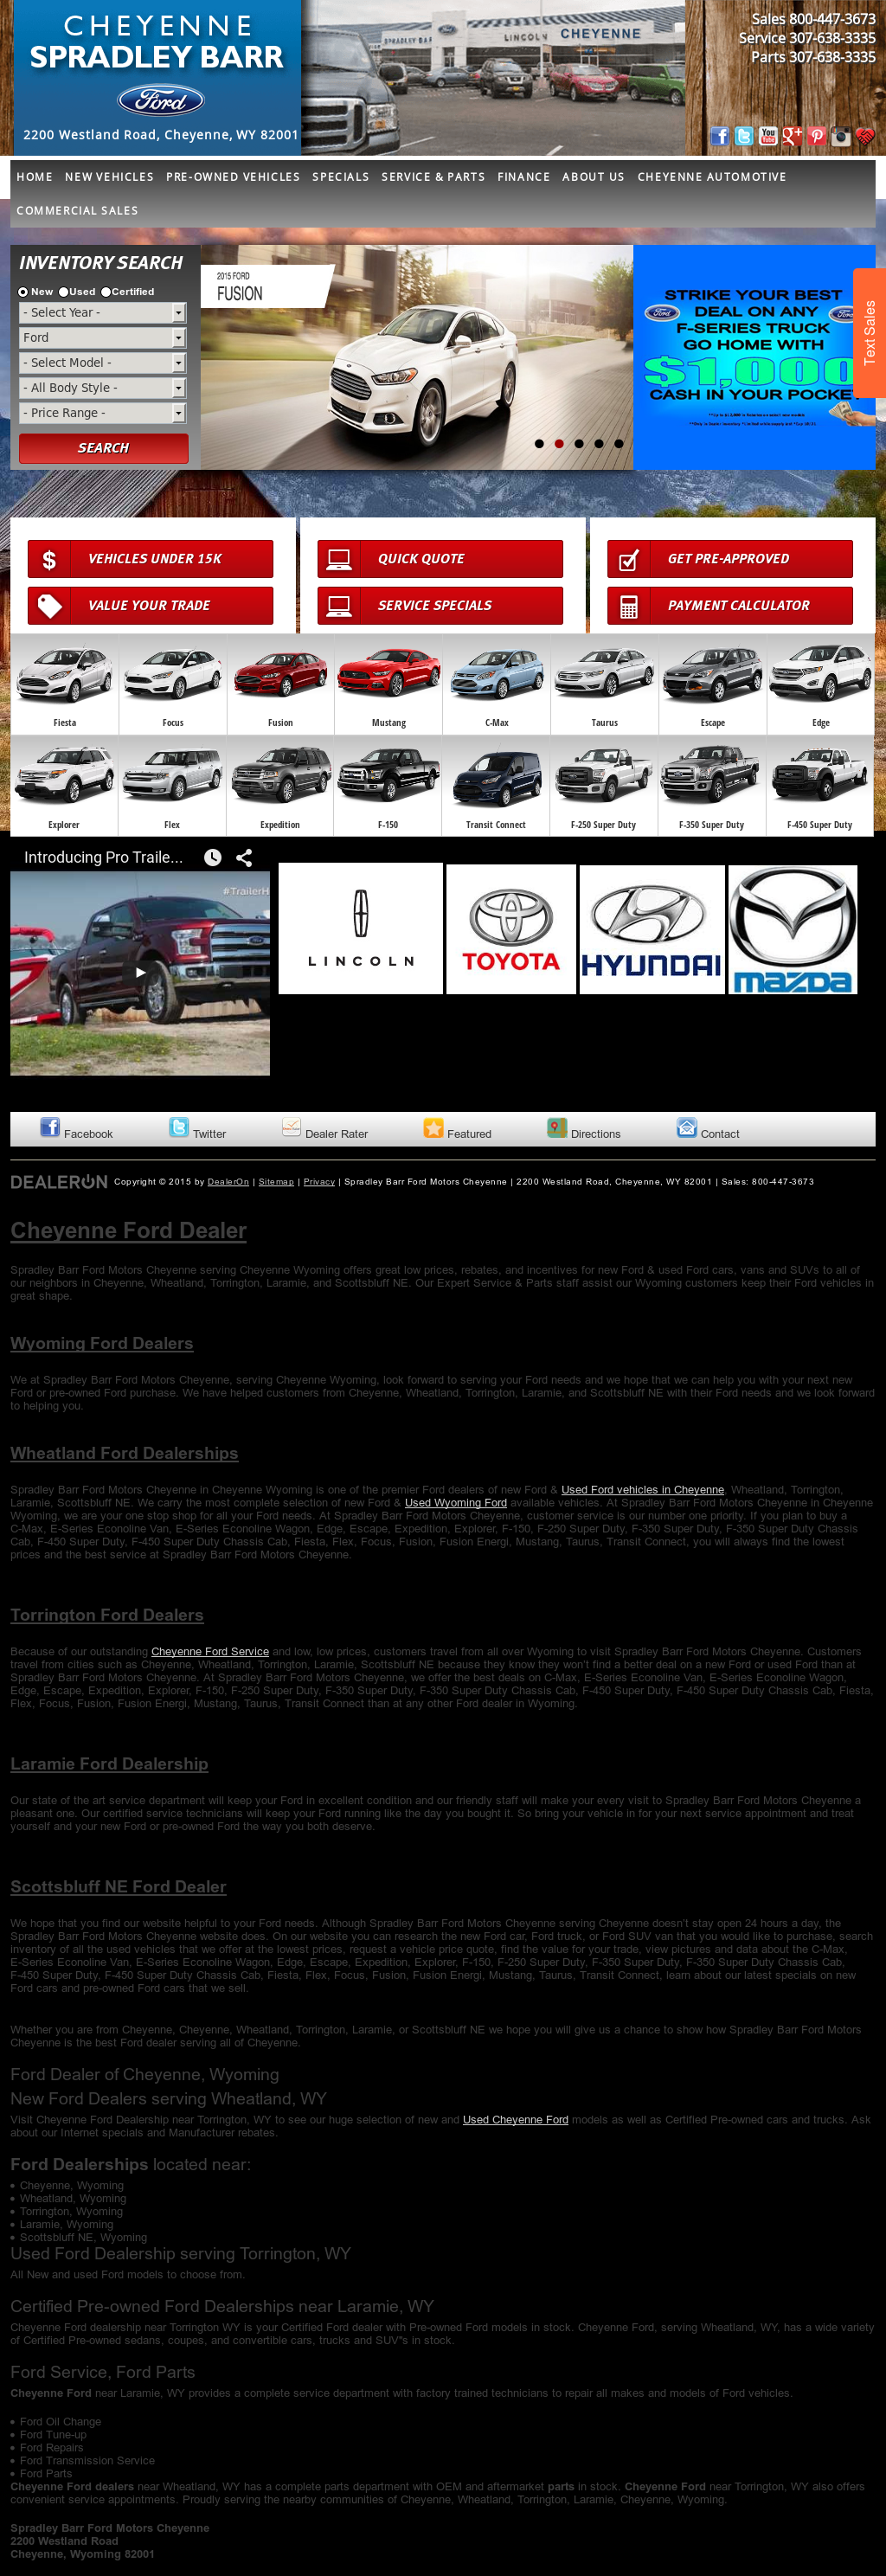 Car Dealerships In Cheyenne Wy >> Spradley Barr Motor Competitors Revenue And Employees